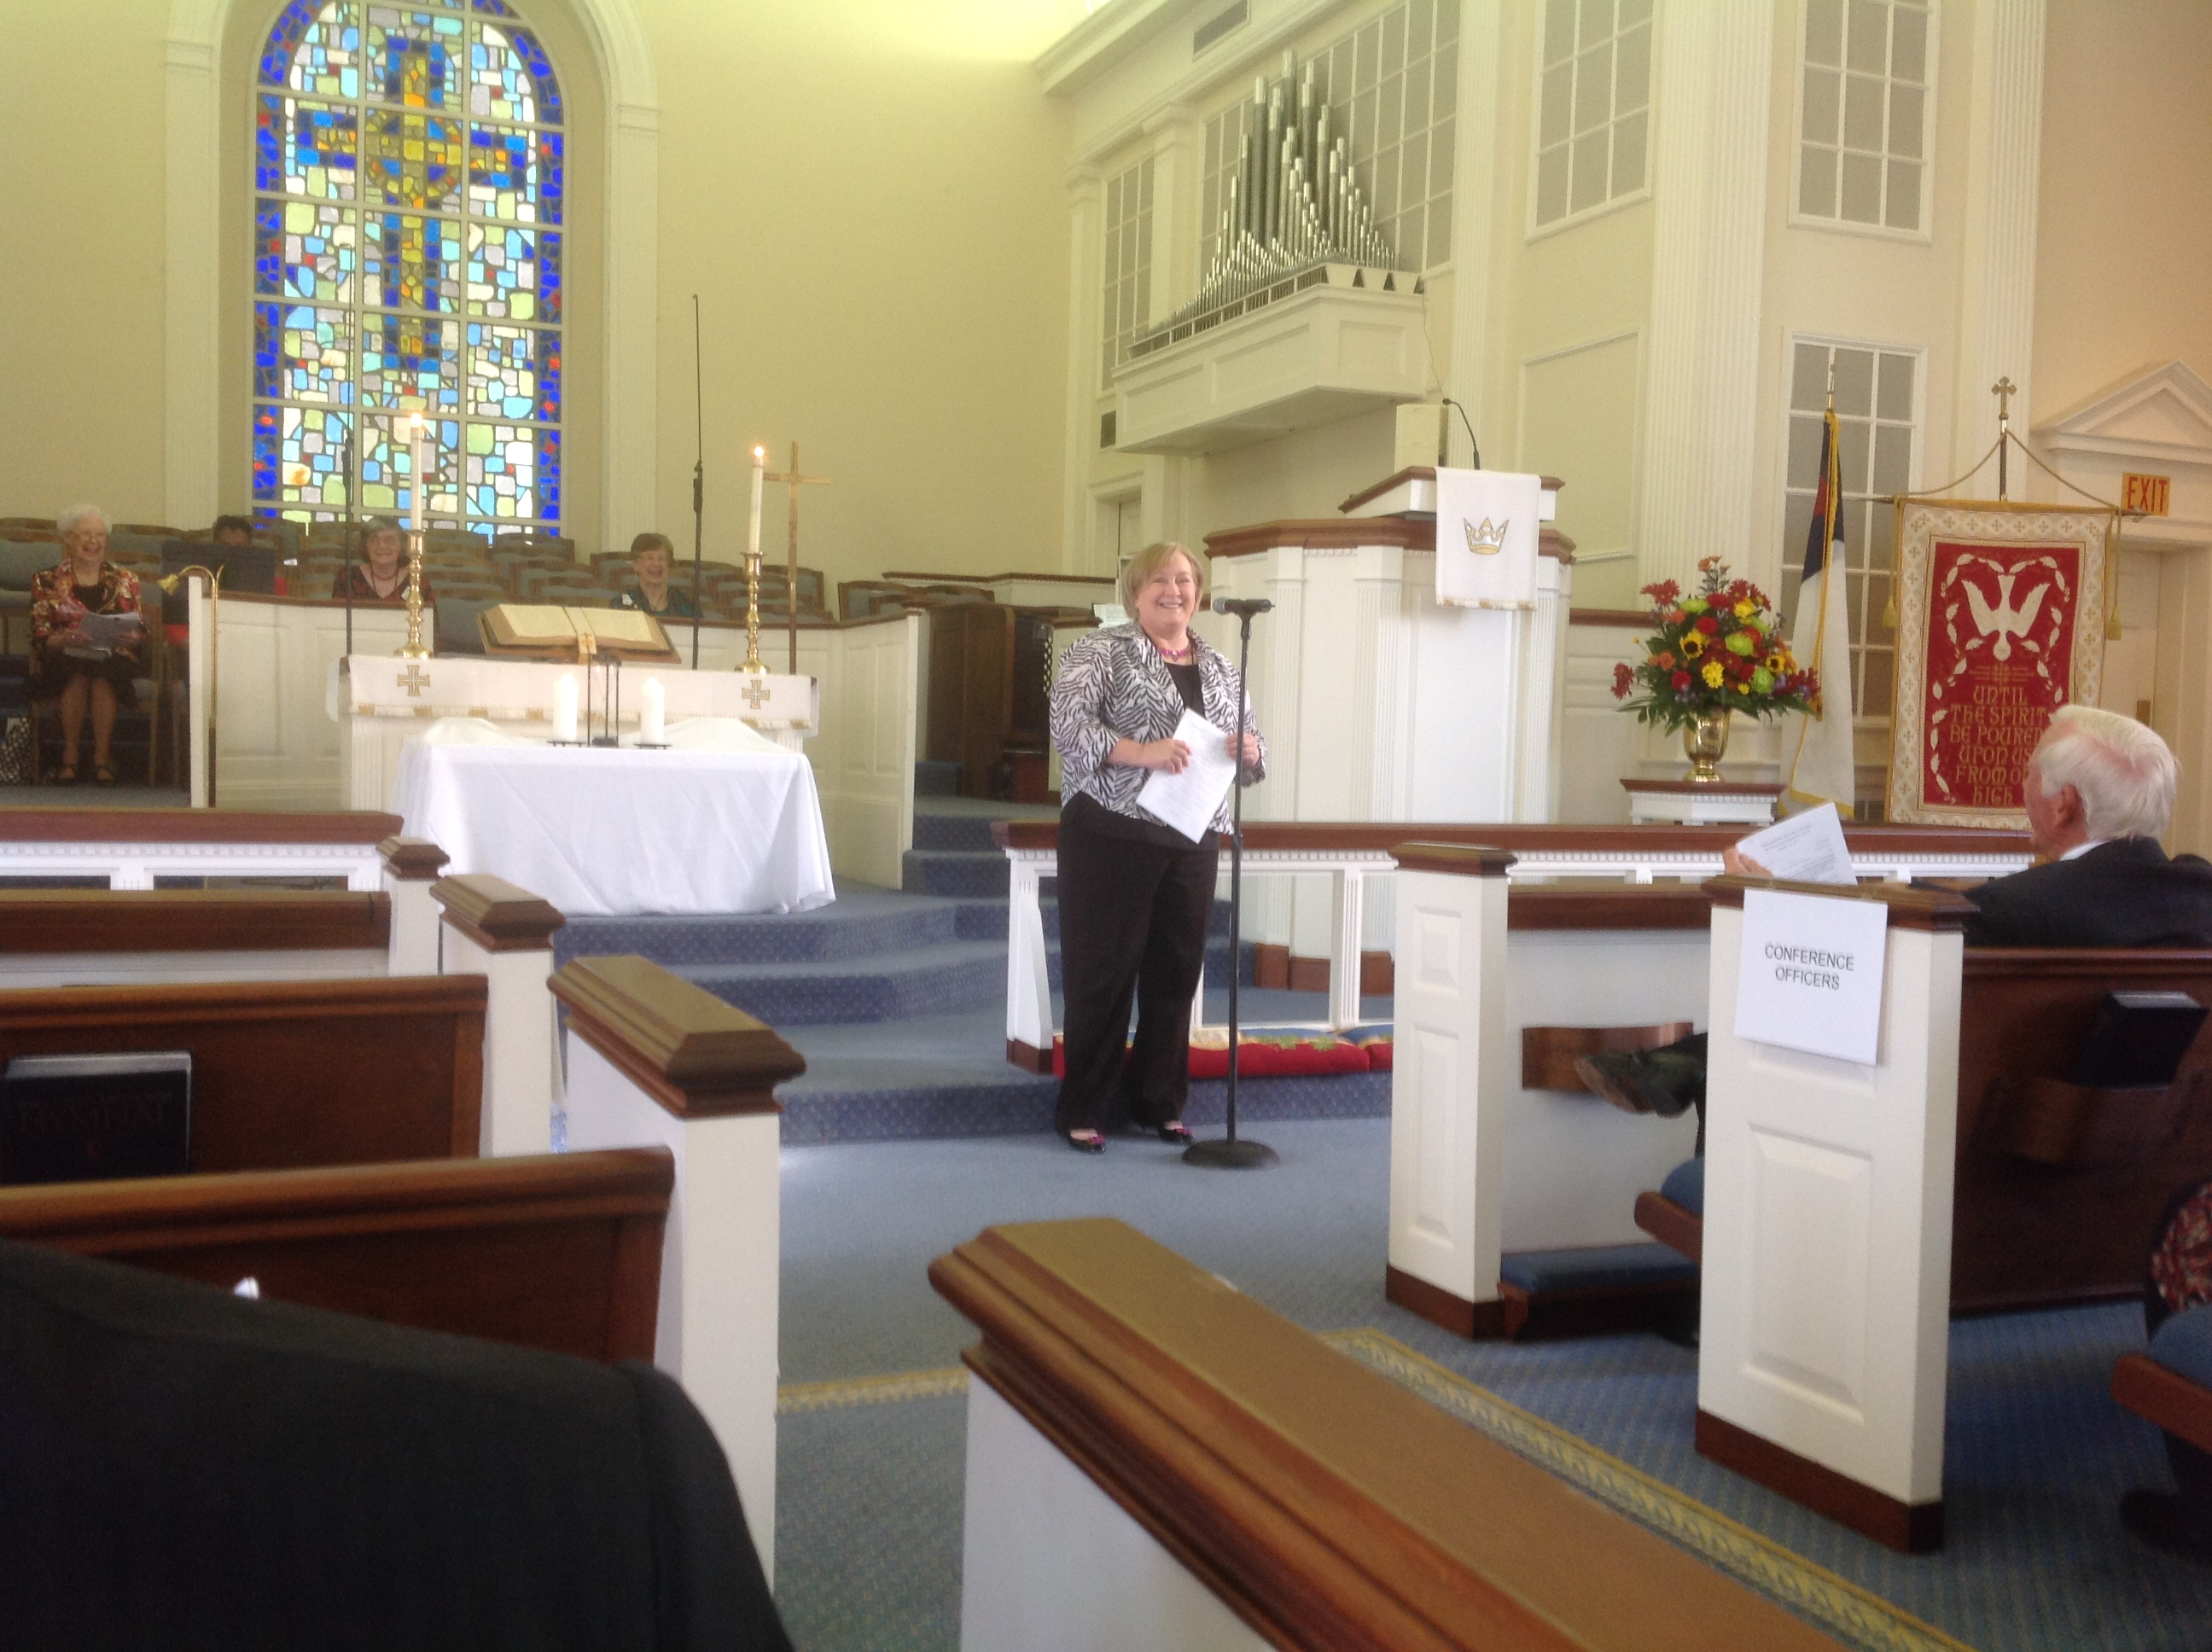 Rev. Leigh Ann Raynor welcomes the UMW Annual Meeting to Porterfield Oct 18